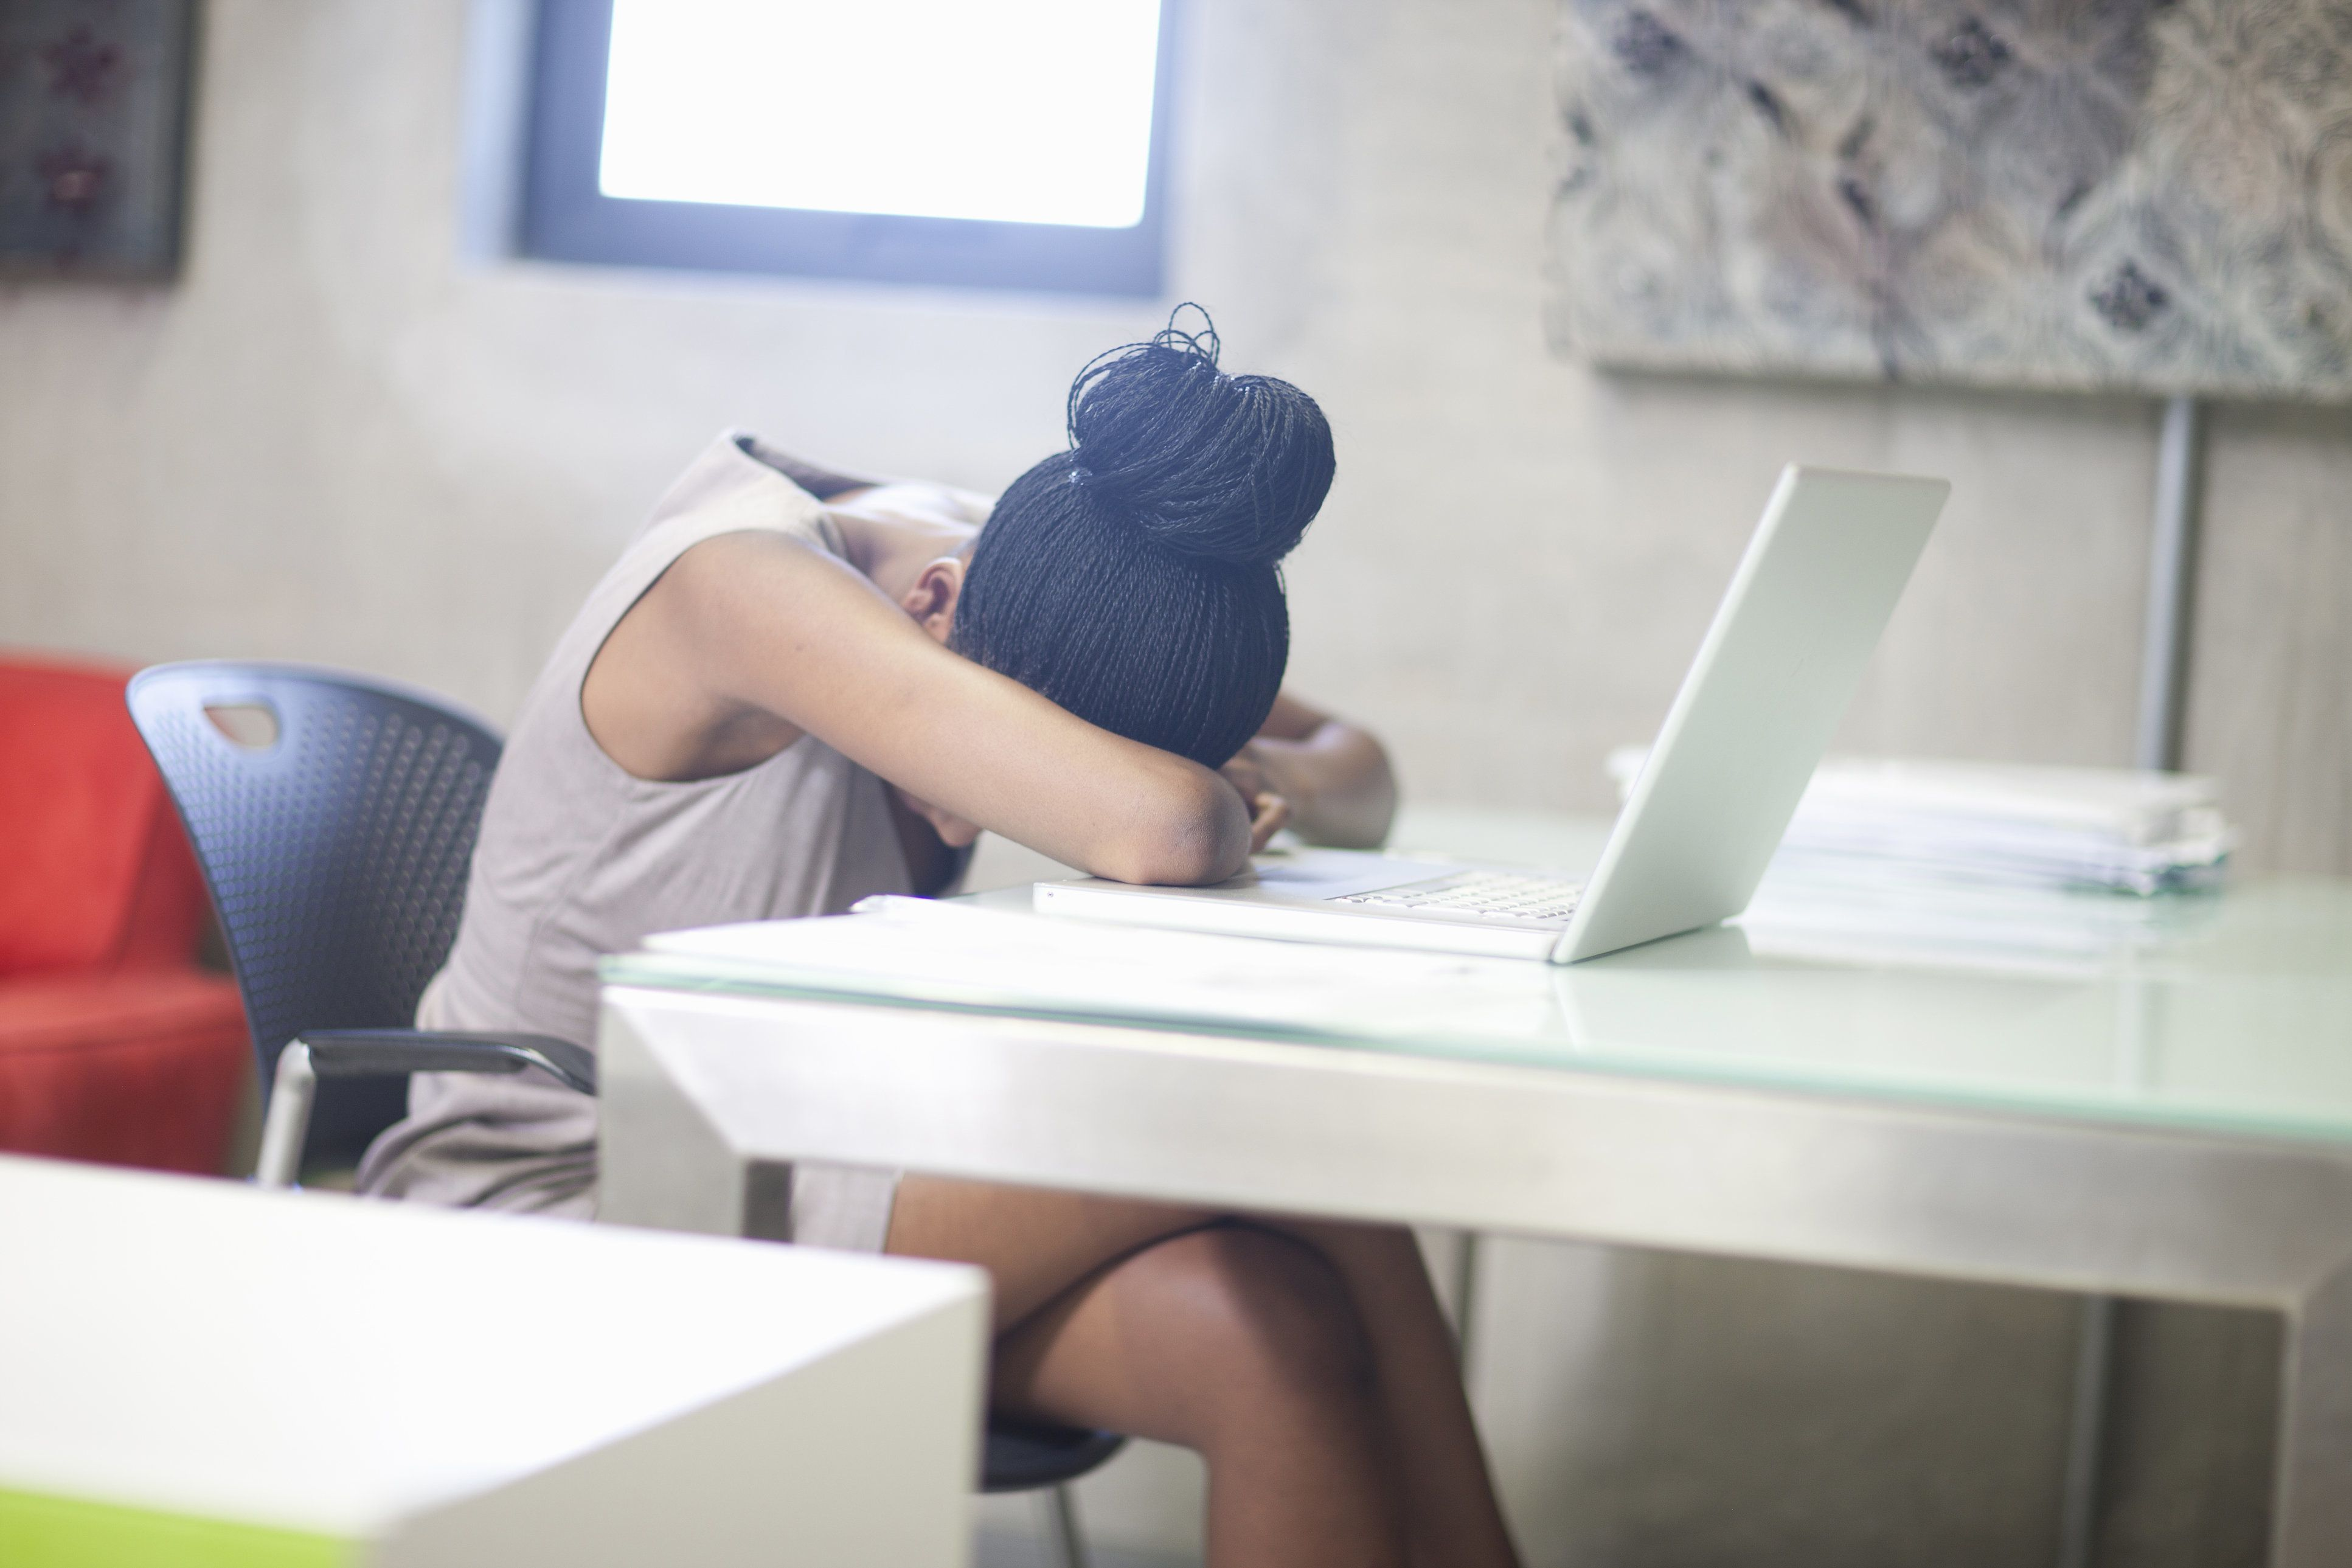 Crying At Work Happens. Here's How To Handle It, According To